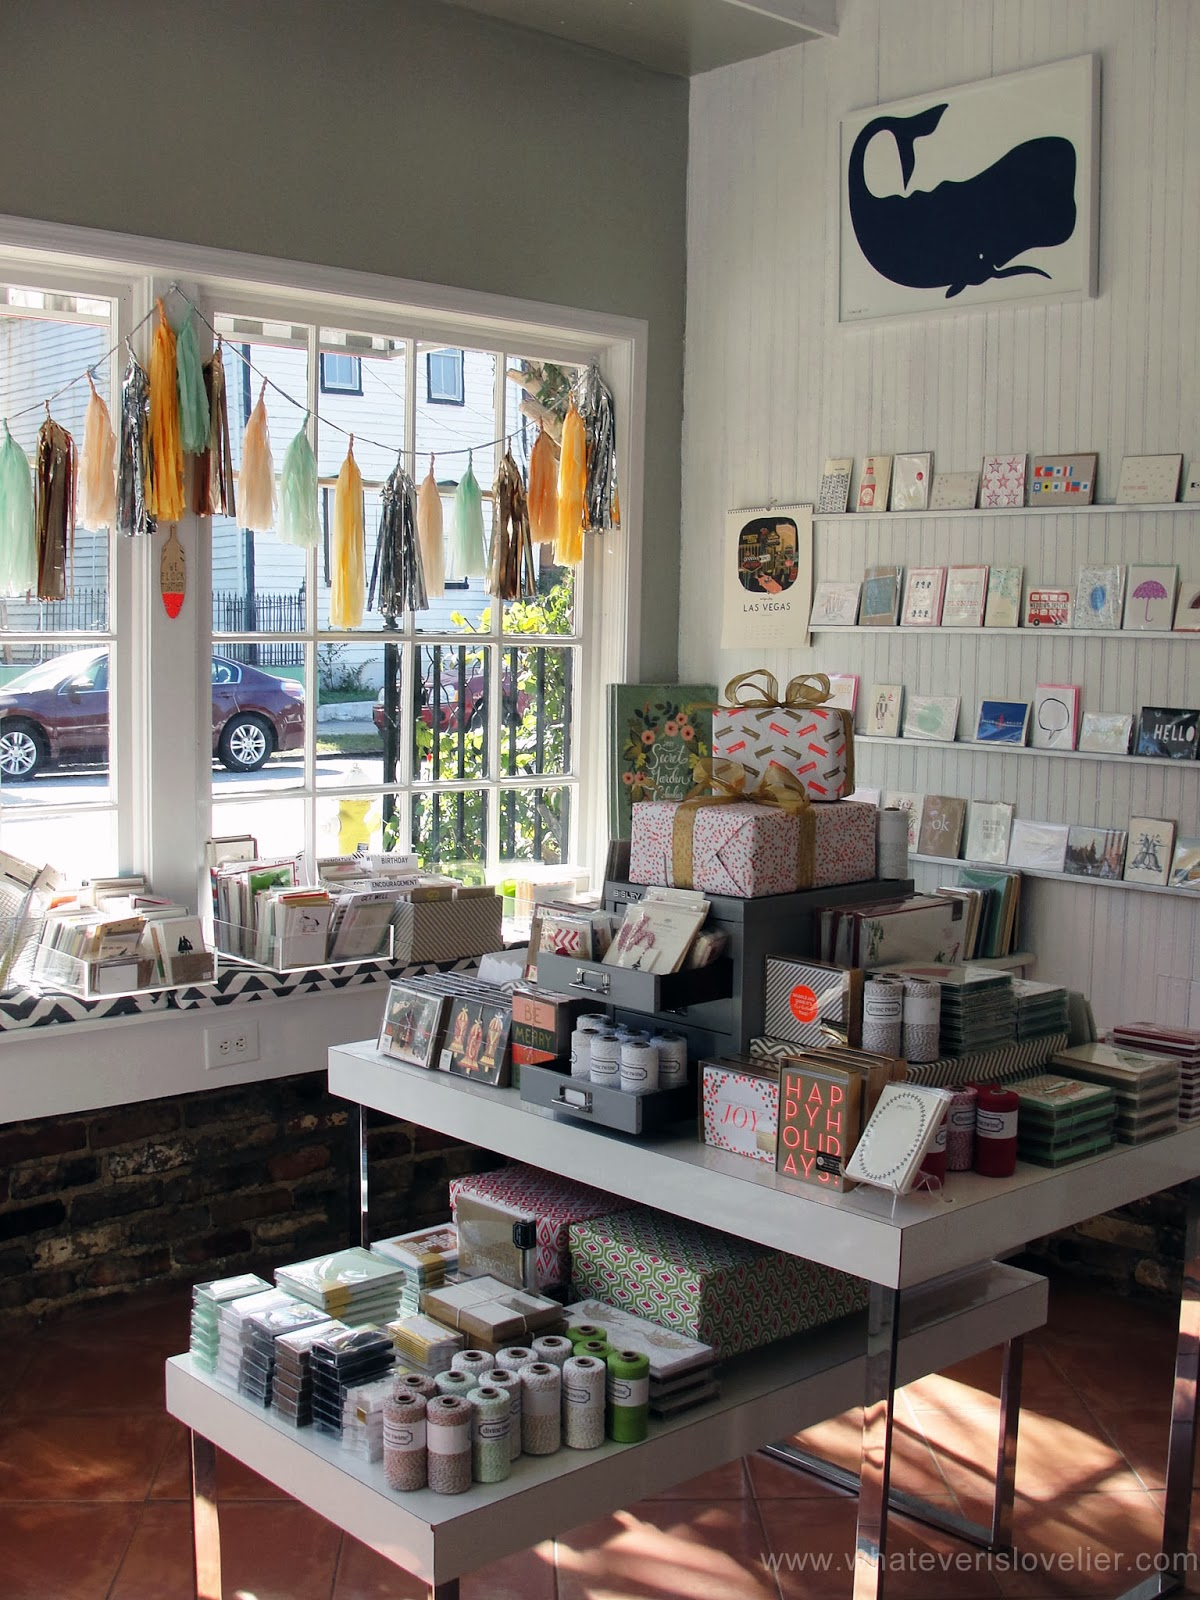 Charleston: Shopping Treats and Yummy Eats